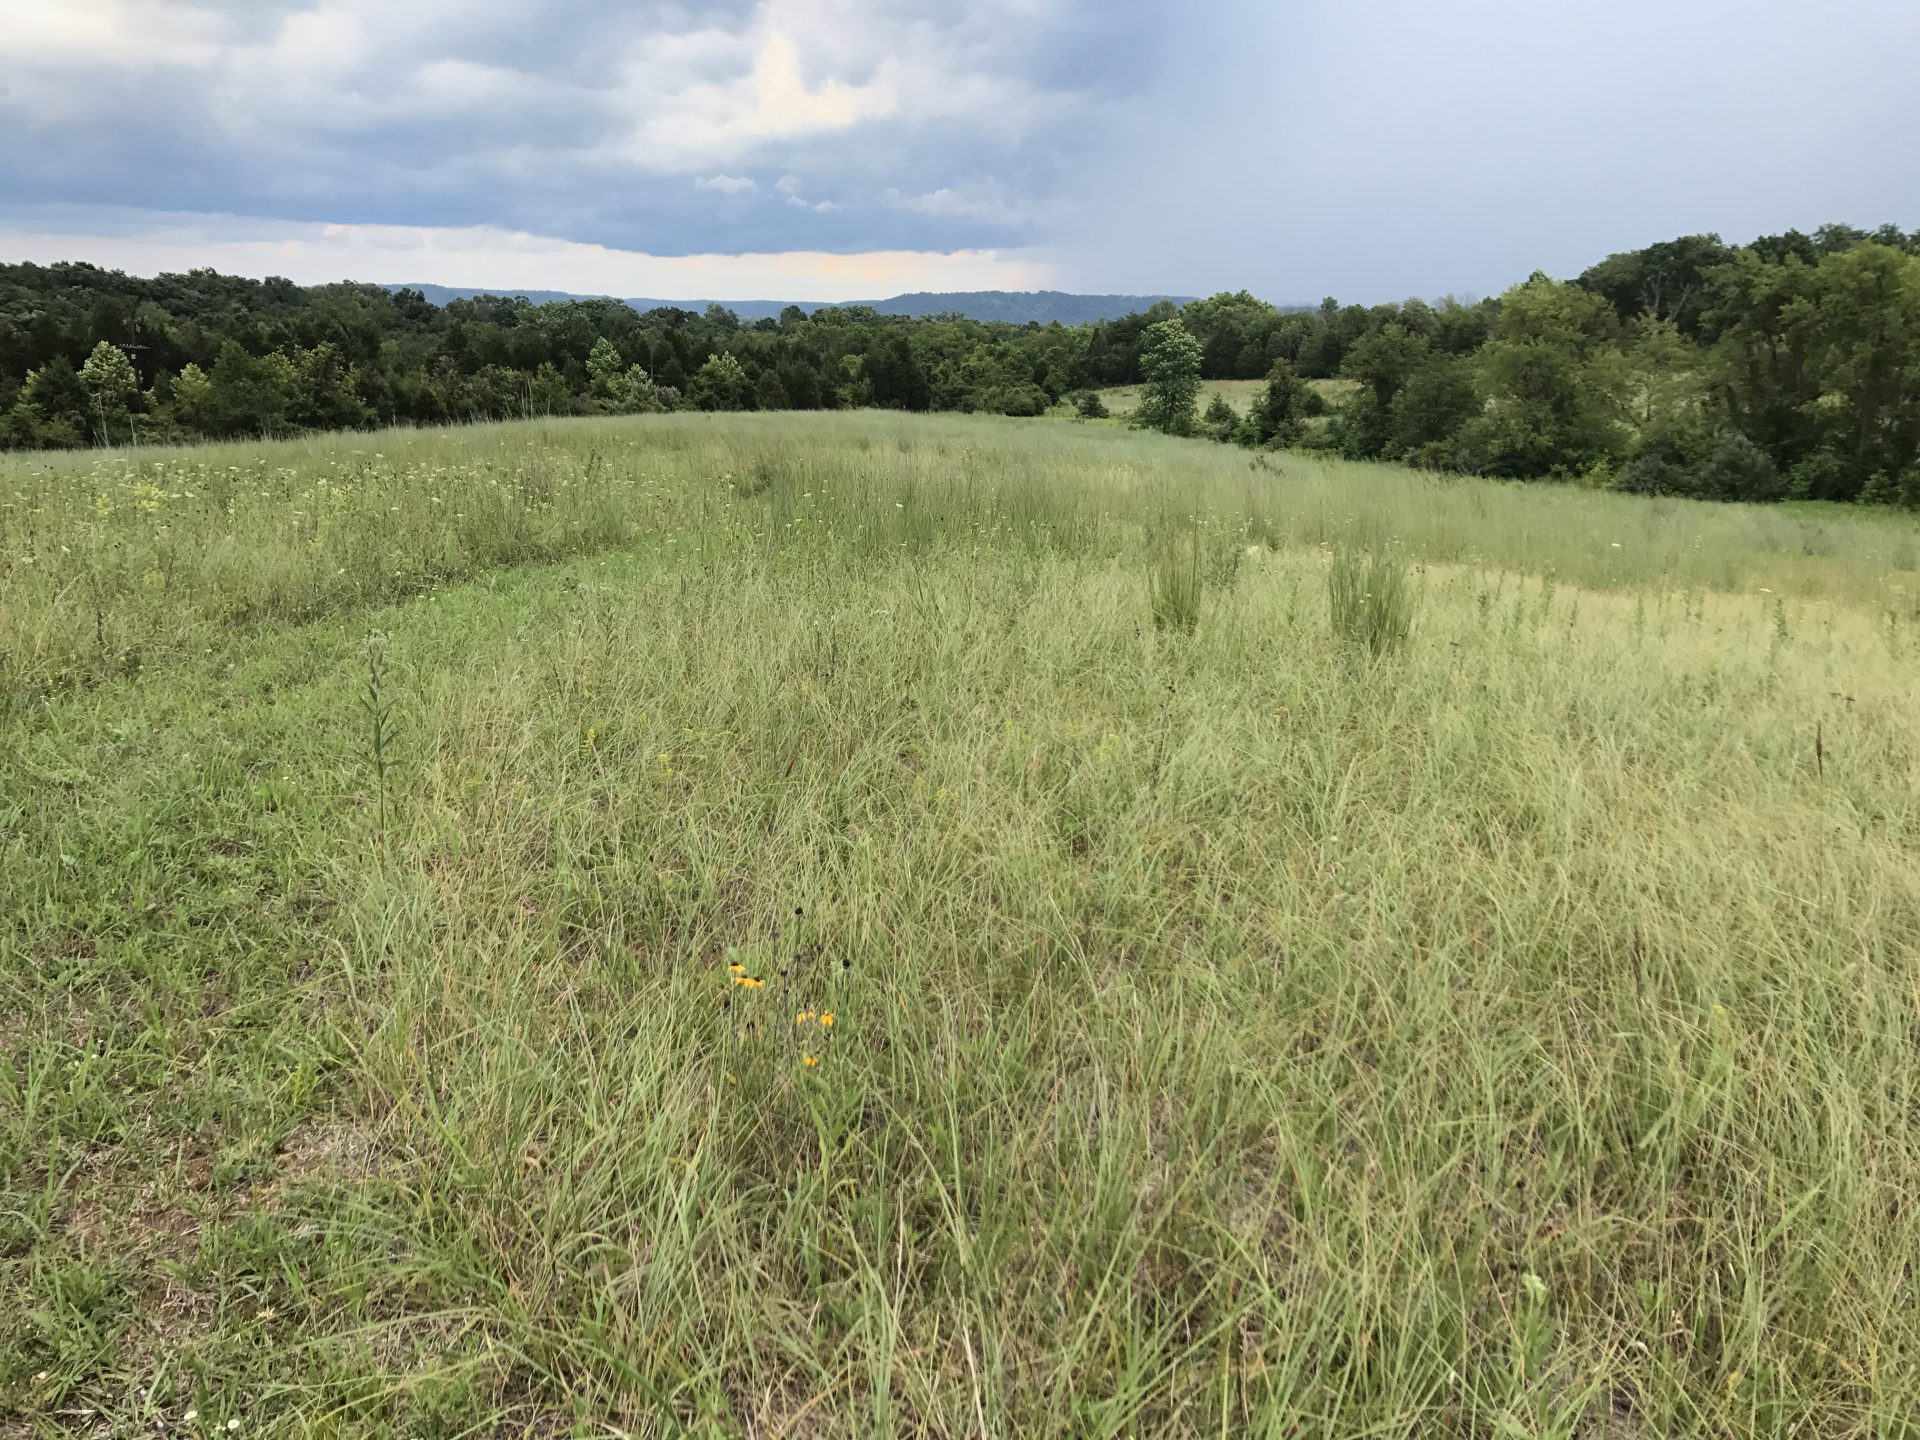 Plum Run Prairie is one of only three remaining sites where you can find the Plantago cordata, or heart-leaved plantain, an extremely endangered plant.